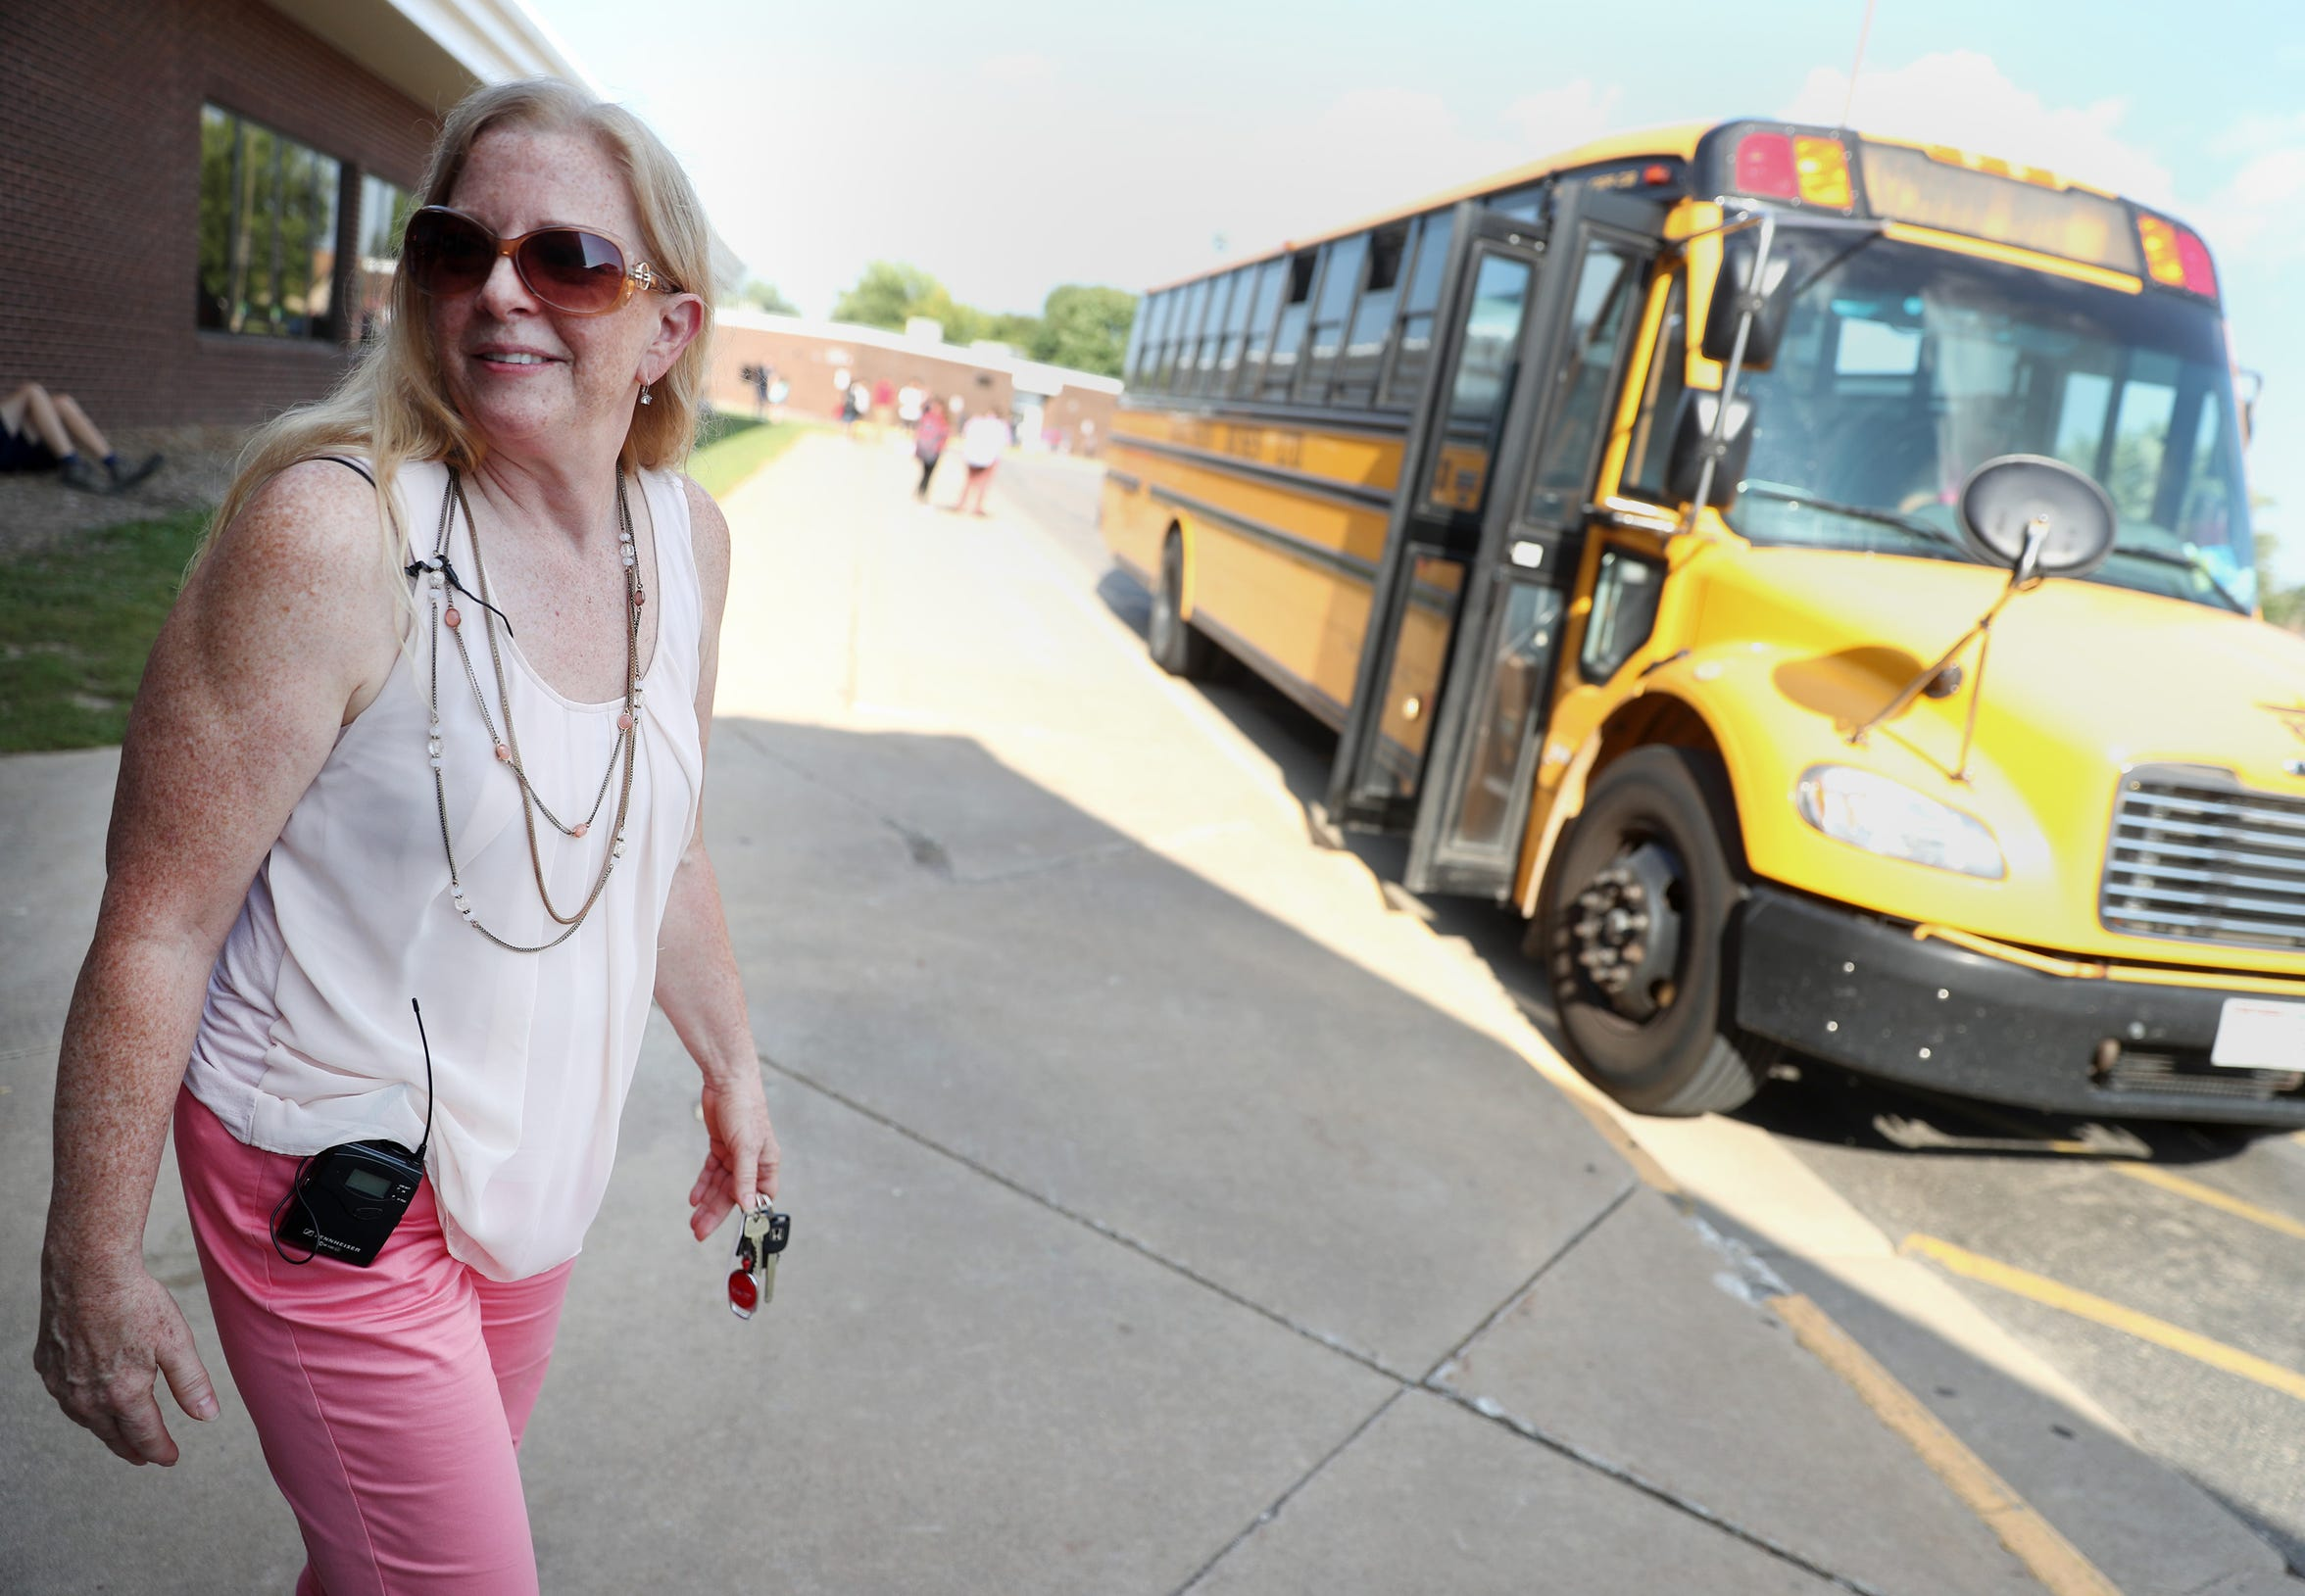 Maripat Franke, a special education teacher at Neenah High School currently enrolled in the Residency In Teacher Education 2.0 program at CESA 6, stands outside Neenah High School while working bus duty at the end of the day on Sept. 17, 2018, in Neenah, Wis. Danny Damiani/USA TODAY NETWORK-Wisconsin